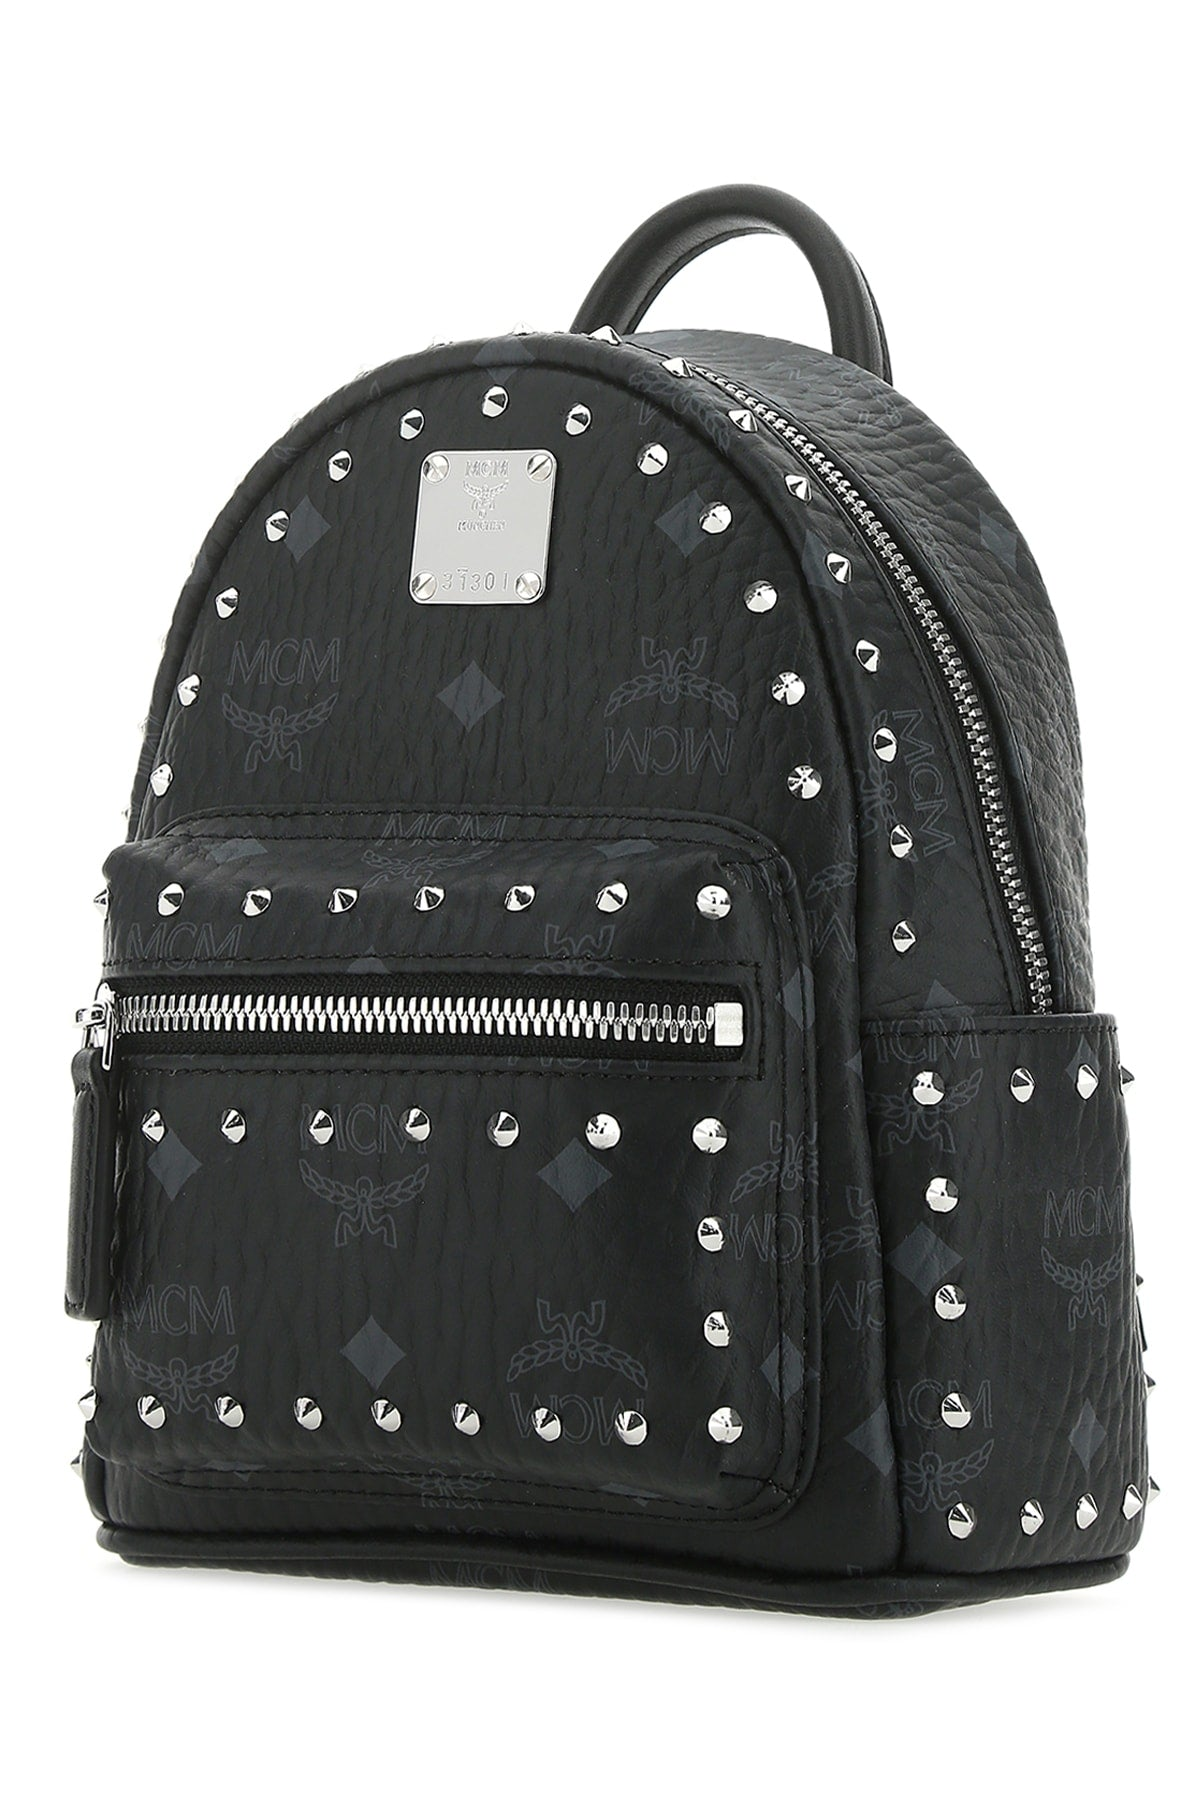 Mcm MCM VISETOS STUDDED BACKPACK